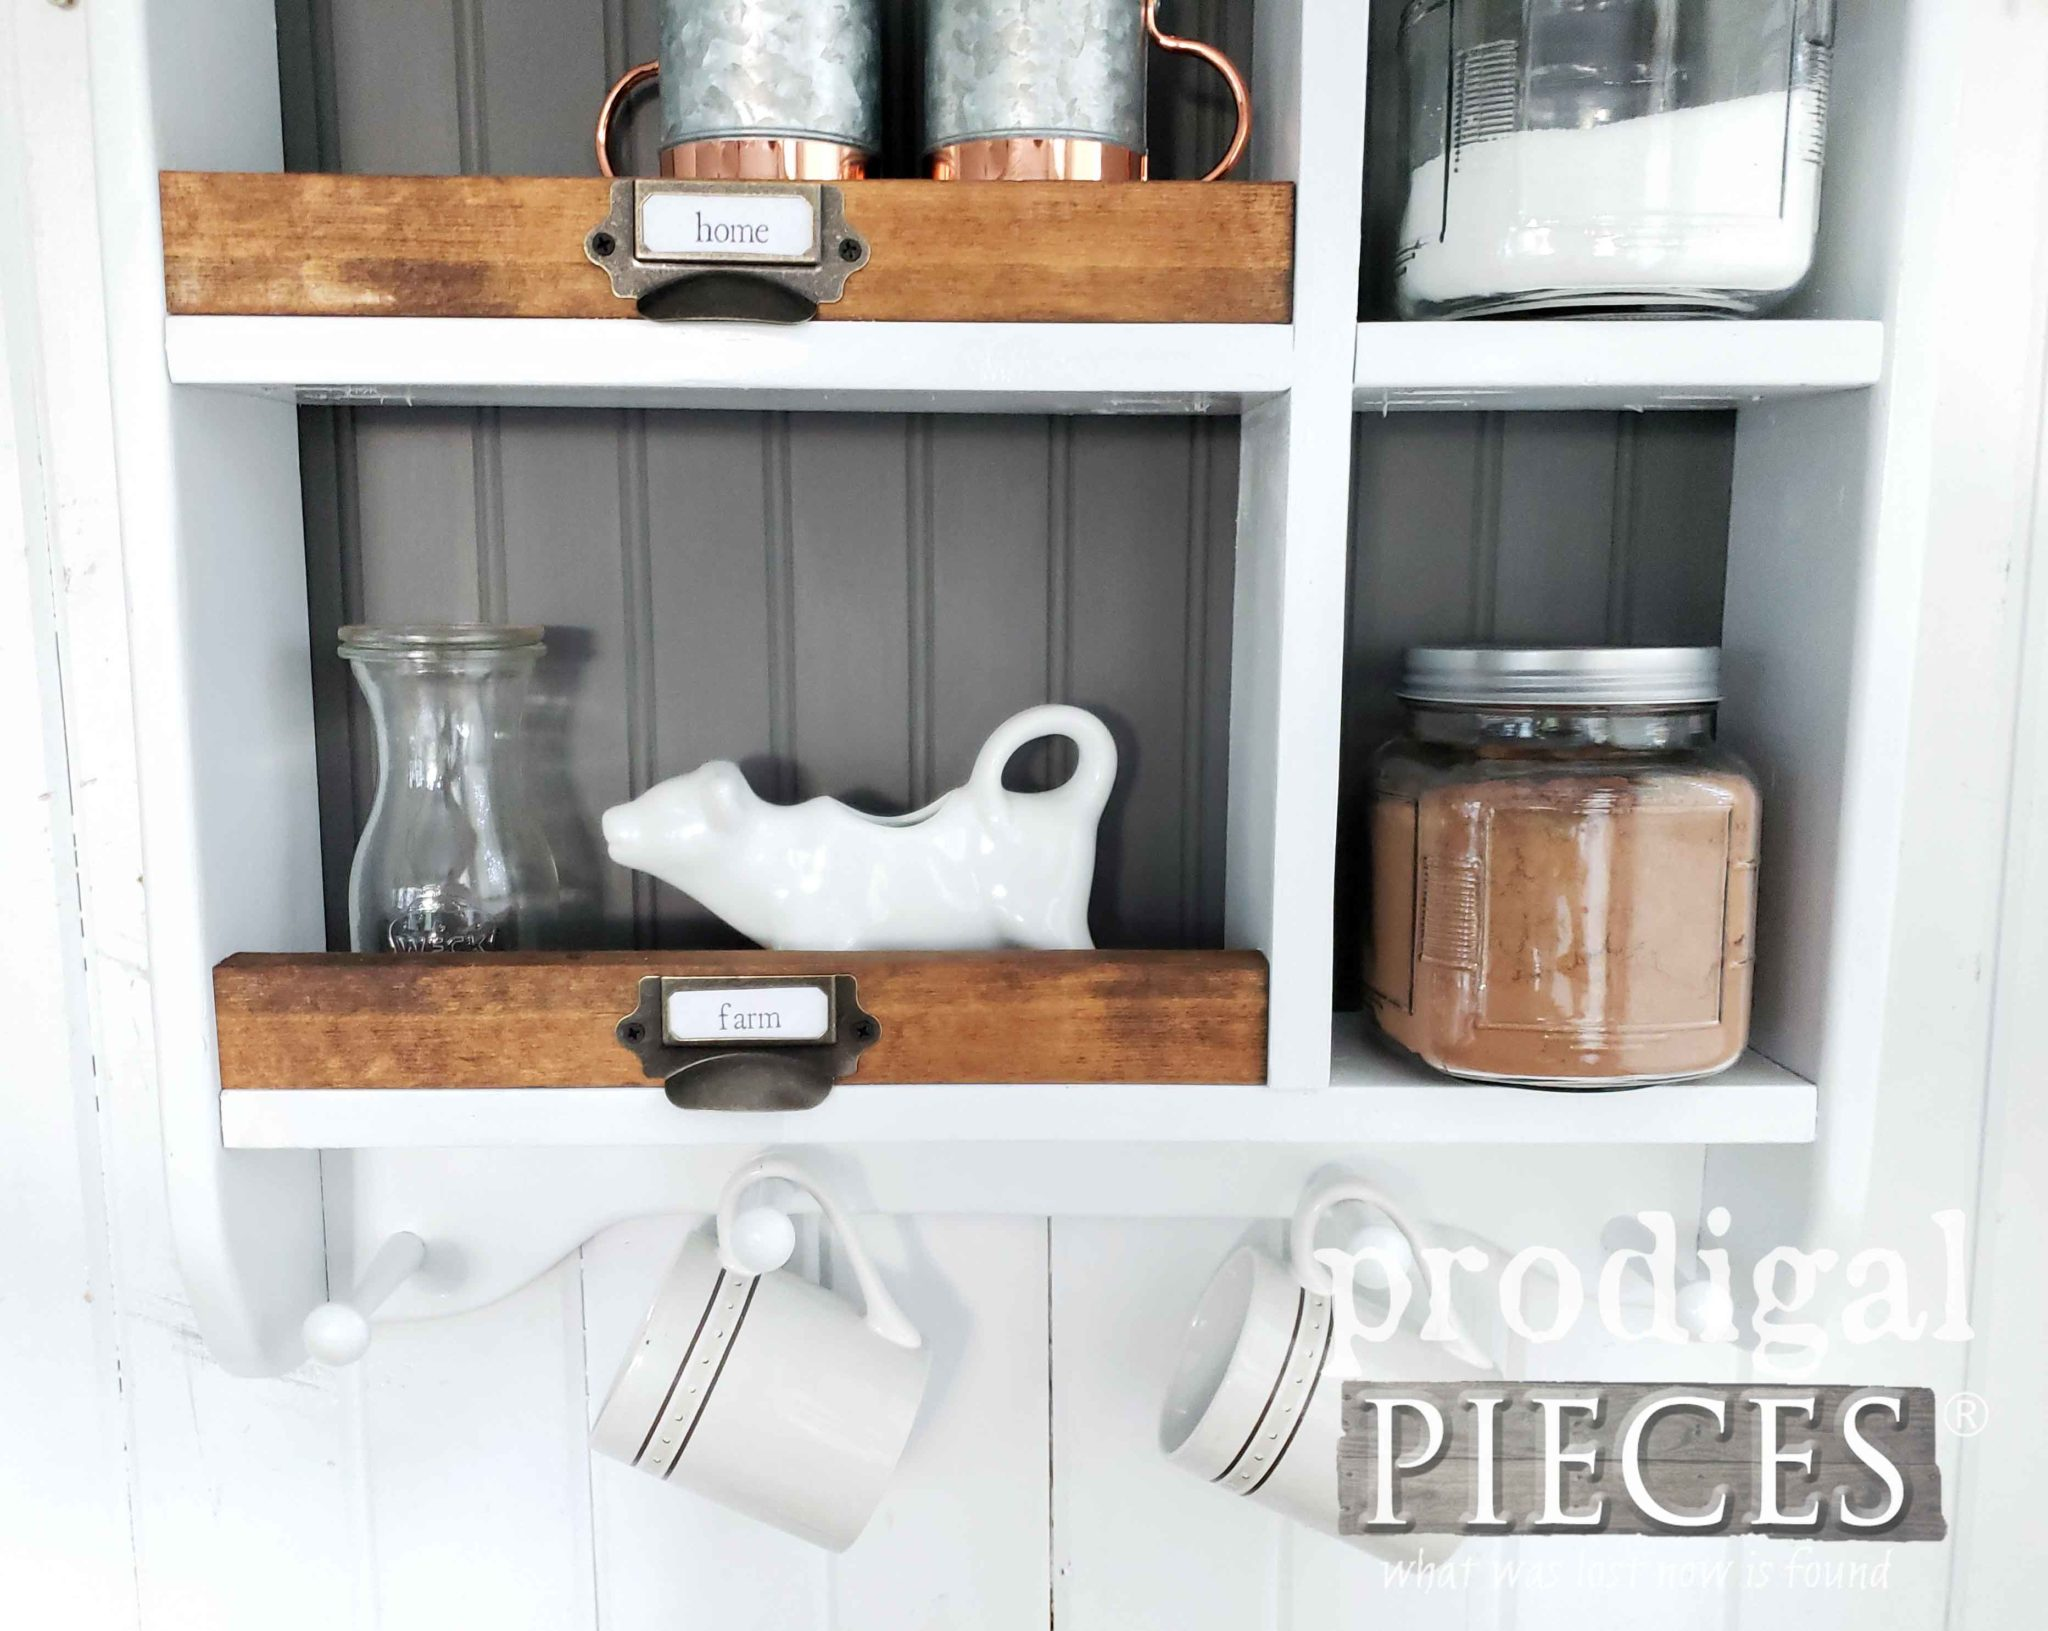 Modern Farmhouse Mug Rack Storage Cubby by Larissa of Prodigal Pieces | prodigalpieces.com